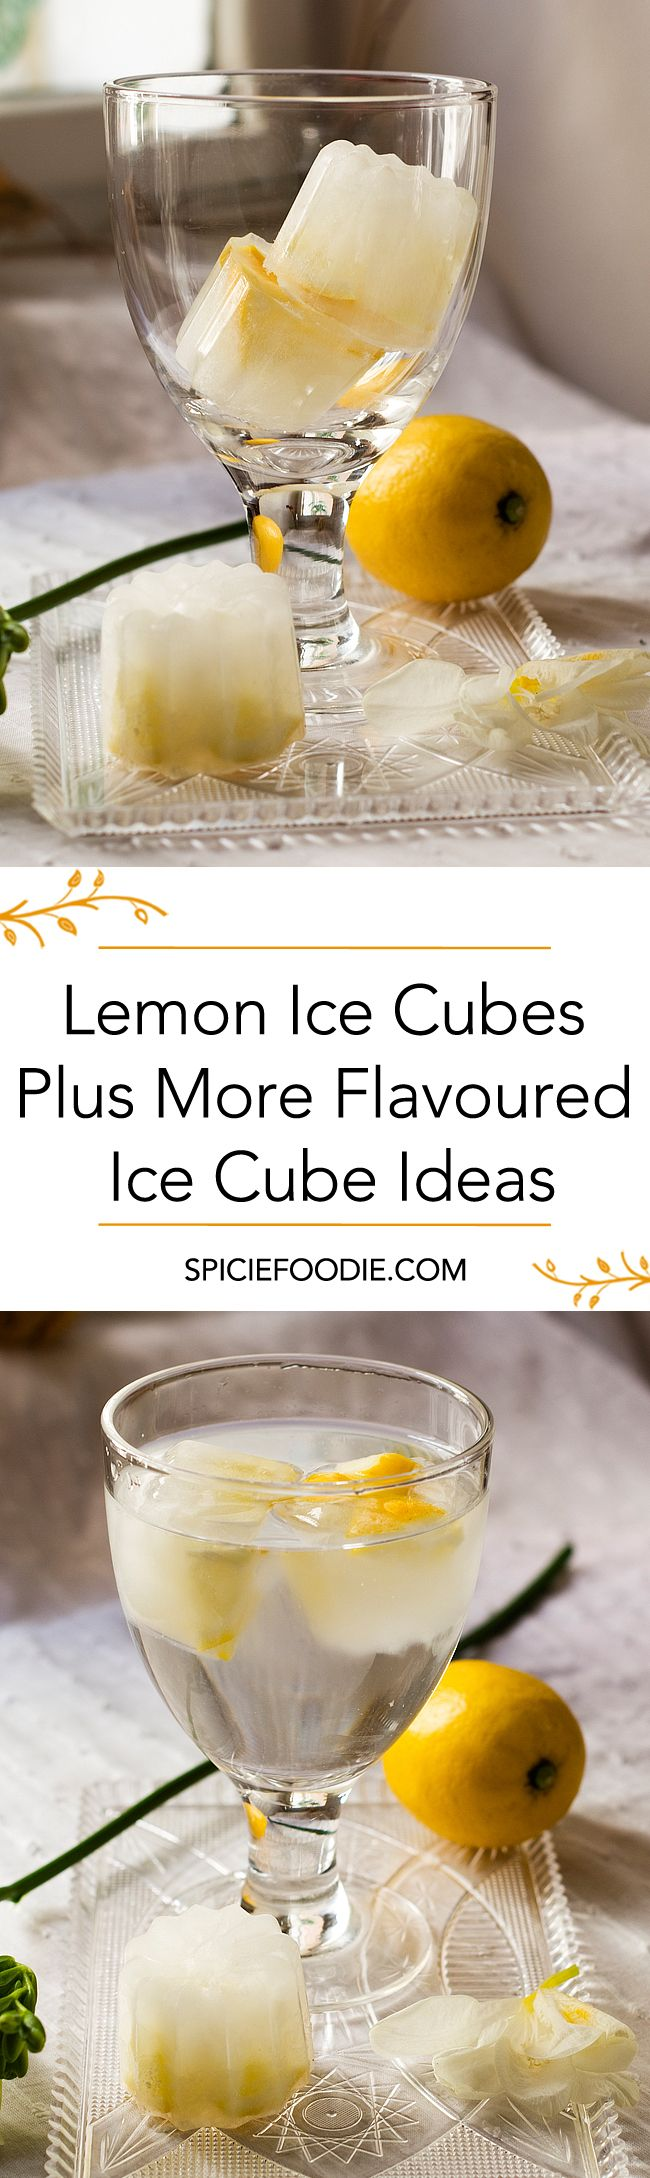 Lemon Ice Cubes + More Flavoured Ice Cube Ideas | #flavouredicecubes #infusedIceCubes #lemon